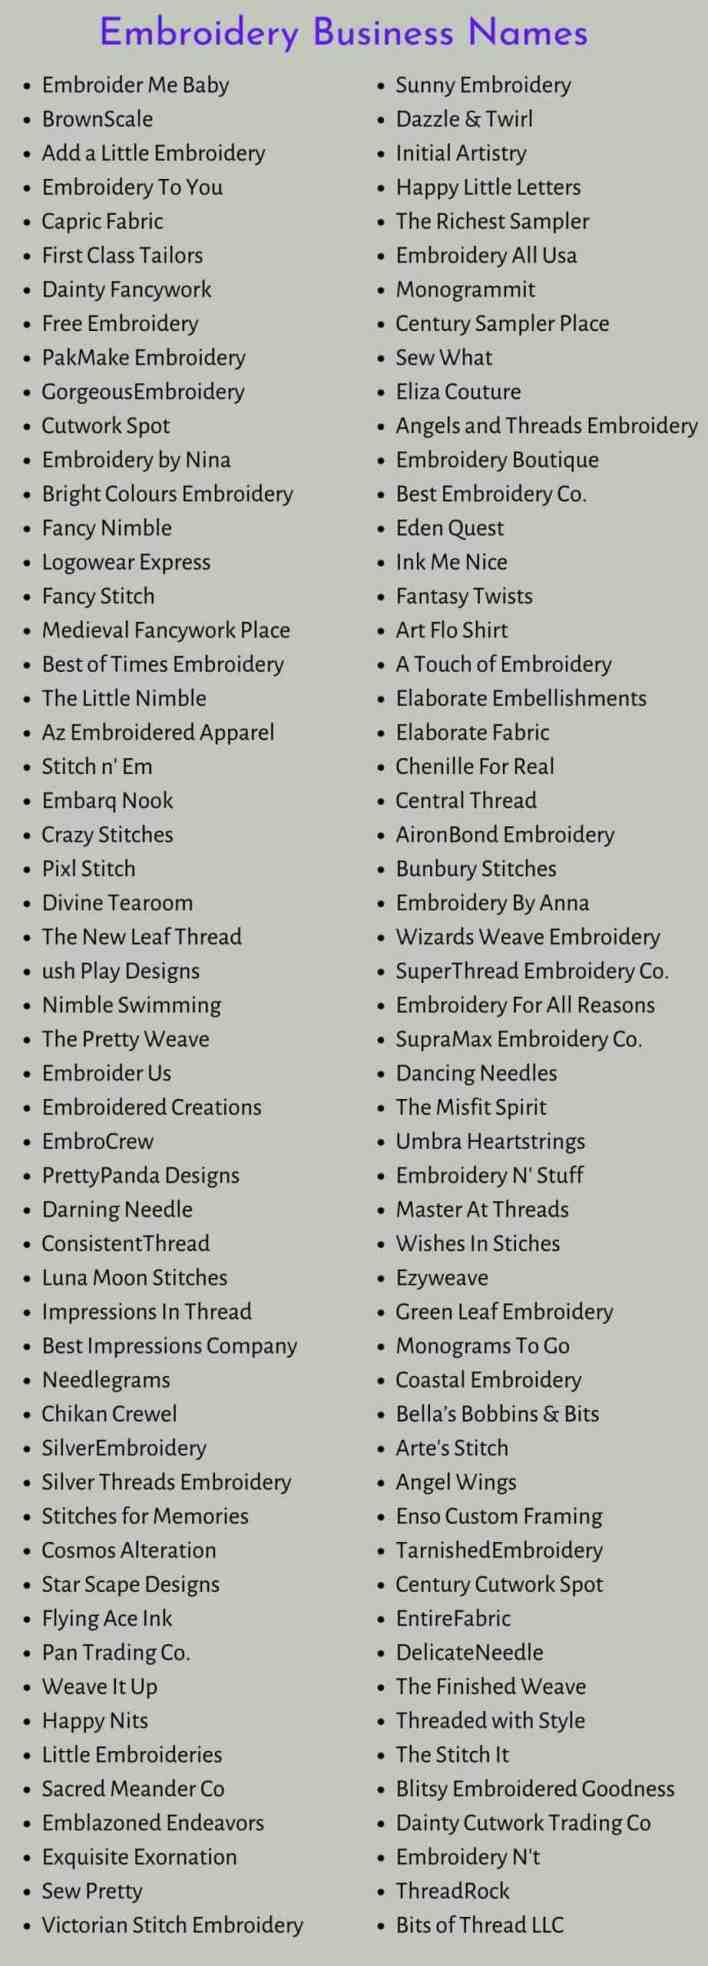 Embroidery Business Names